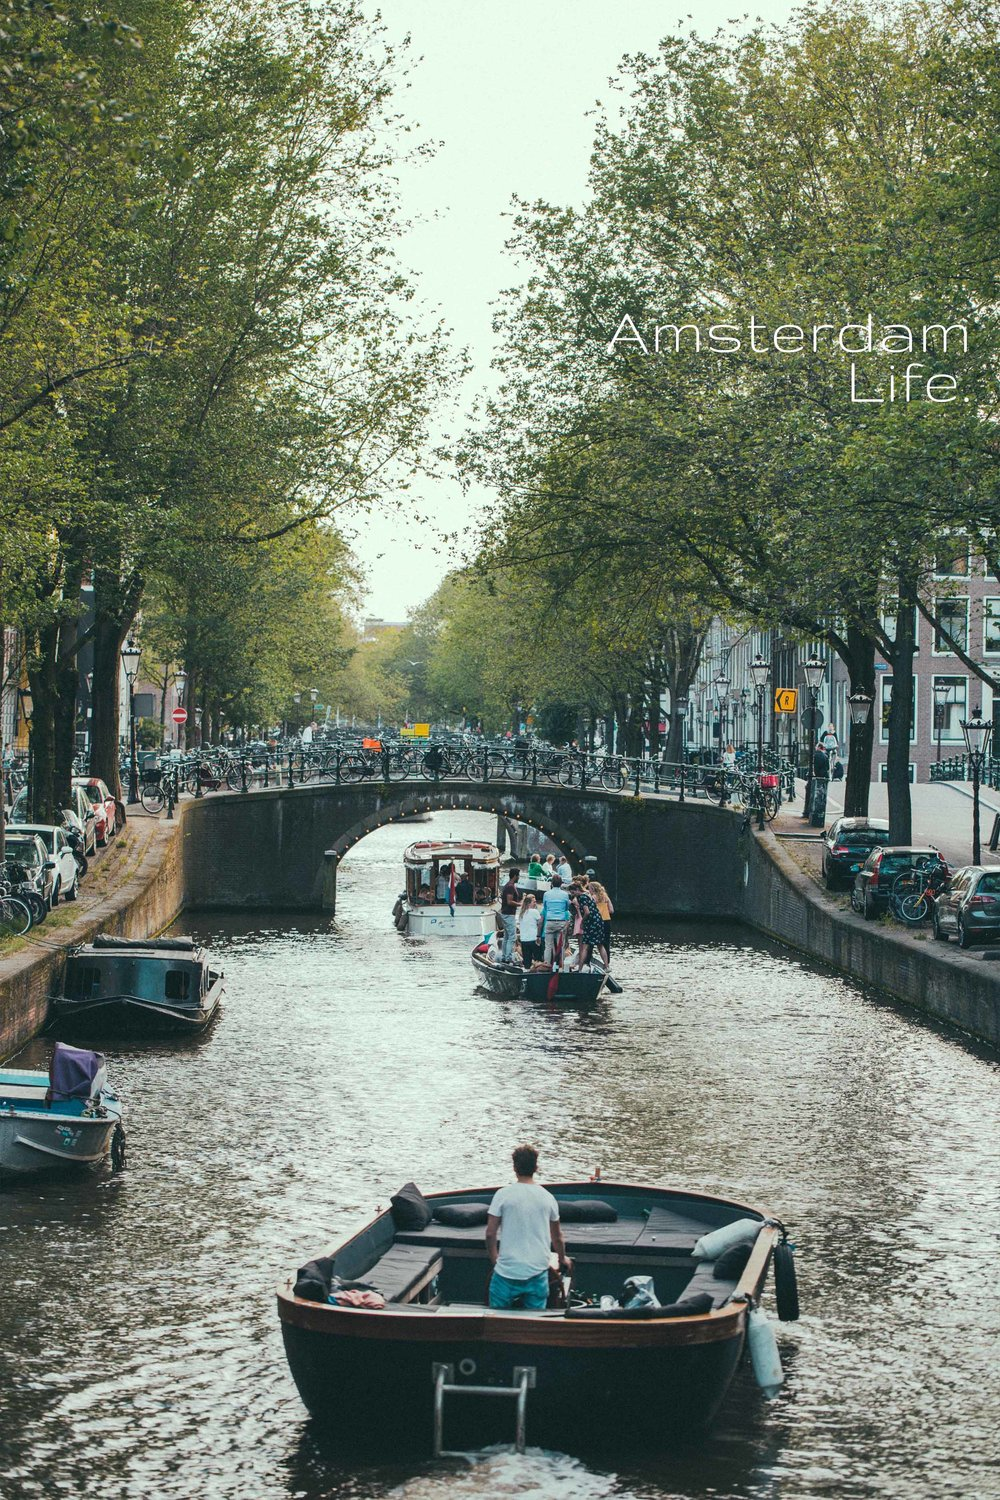 Amsterdam Life. - It is so easy to like Amsterdam. One day in and I can imagine myself living in the city (which inspires the title of this chapter). This series chronicles a couple of days in the city.Click on image to enter.